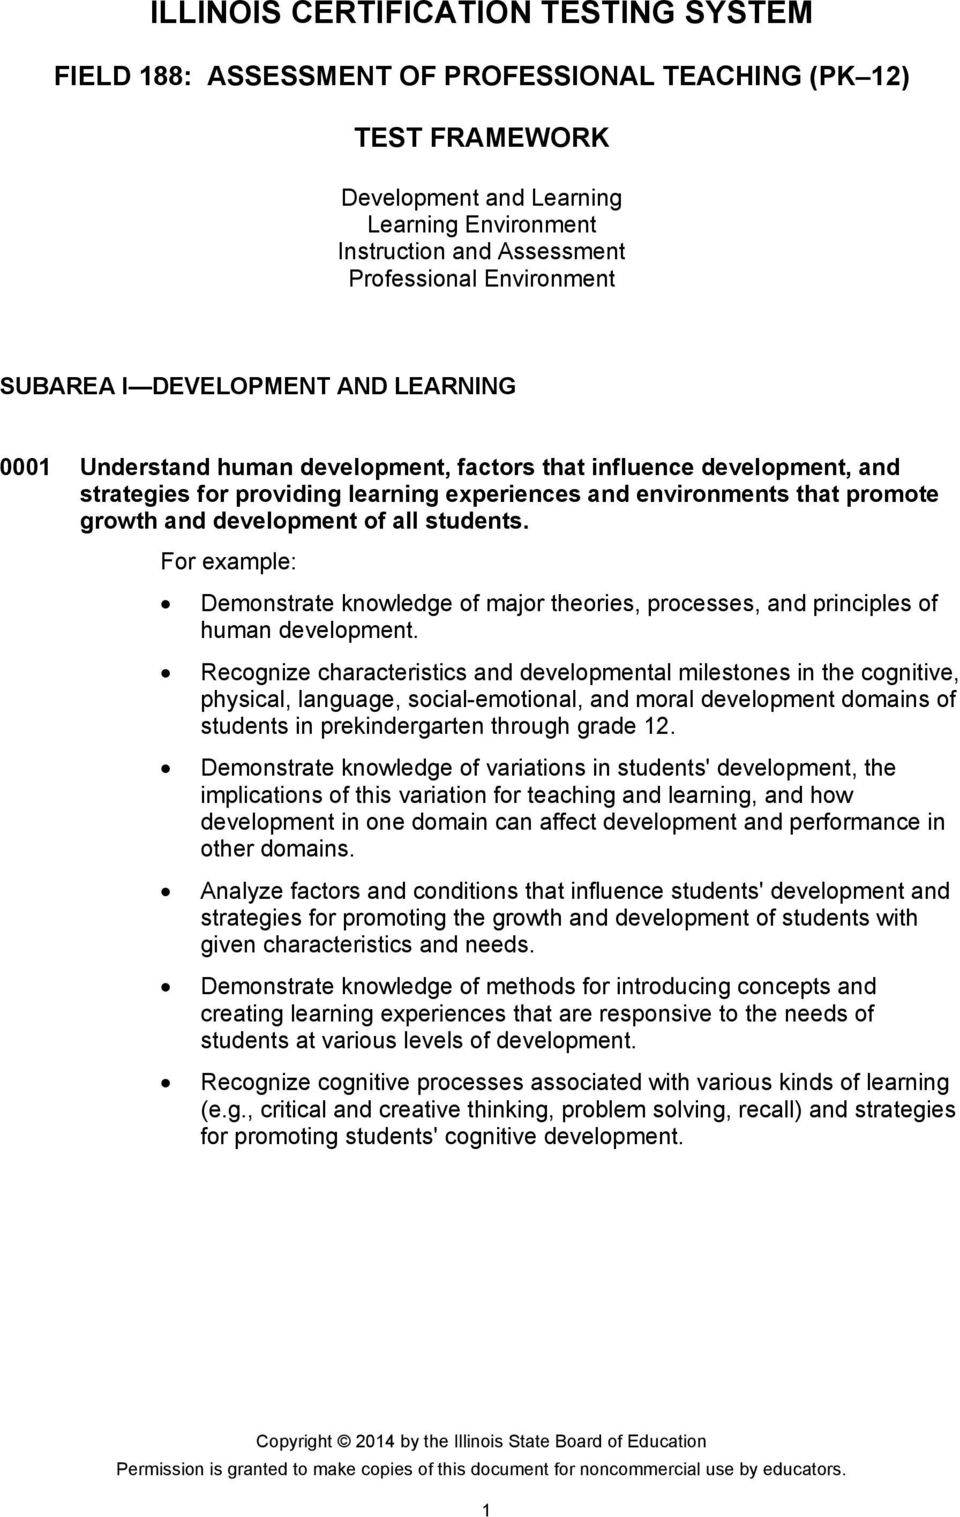 development of all students. Demonstrate knowledge of major theories, processes, and principles of human development.